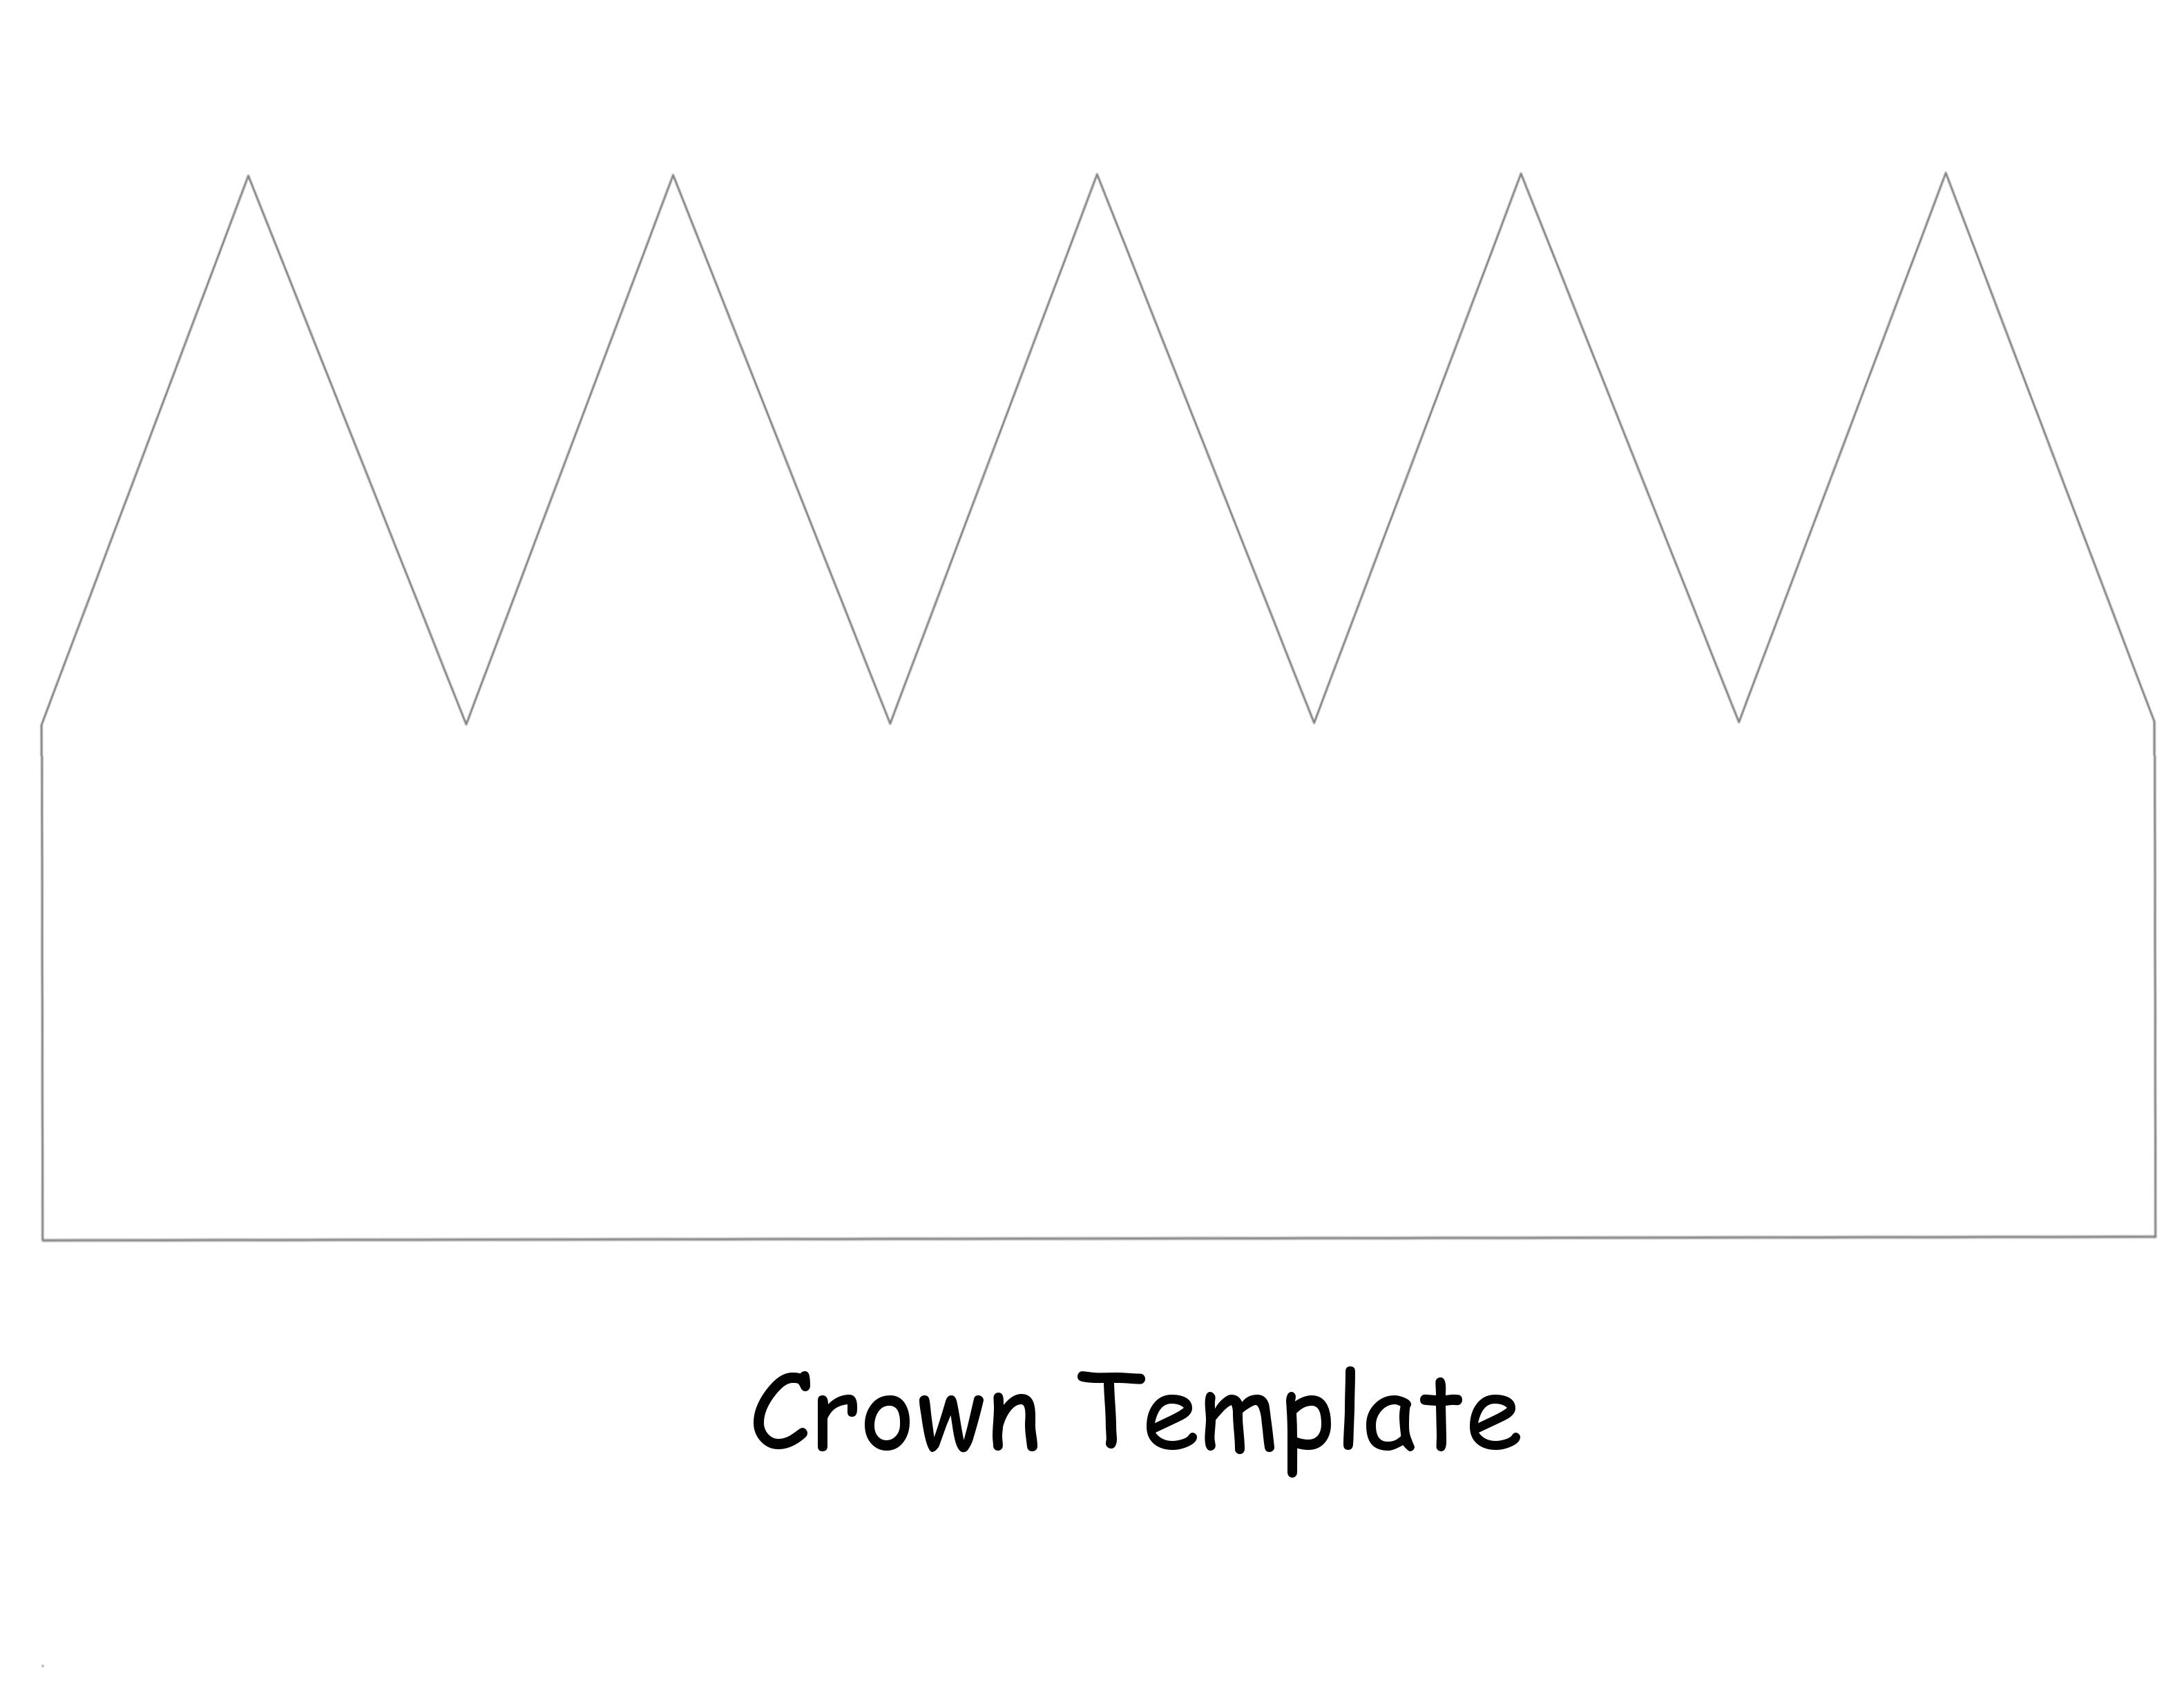 Crown Template for King Kings and Queens Of Miami – Diy Project Crowns and the